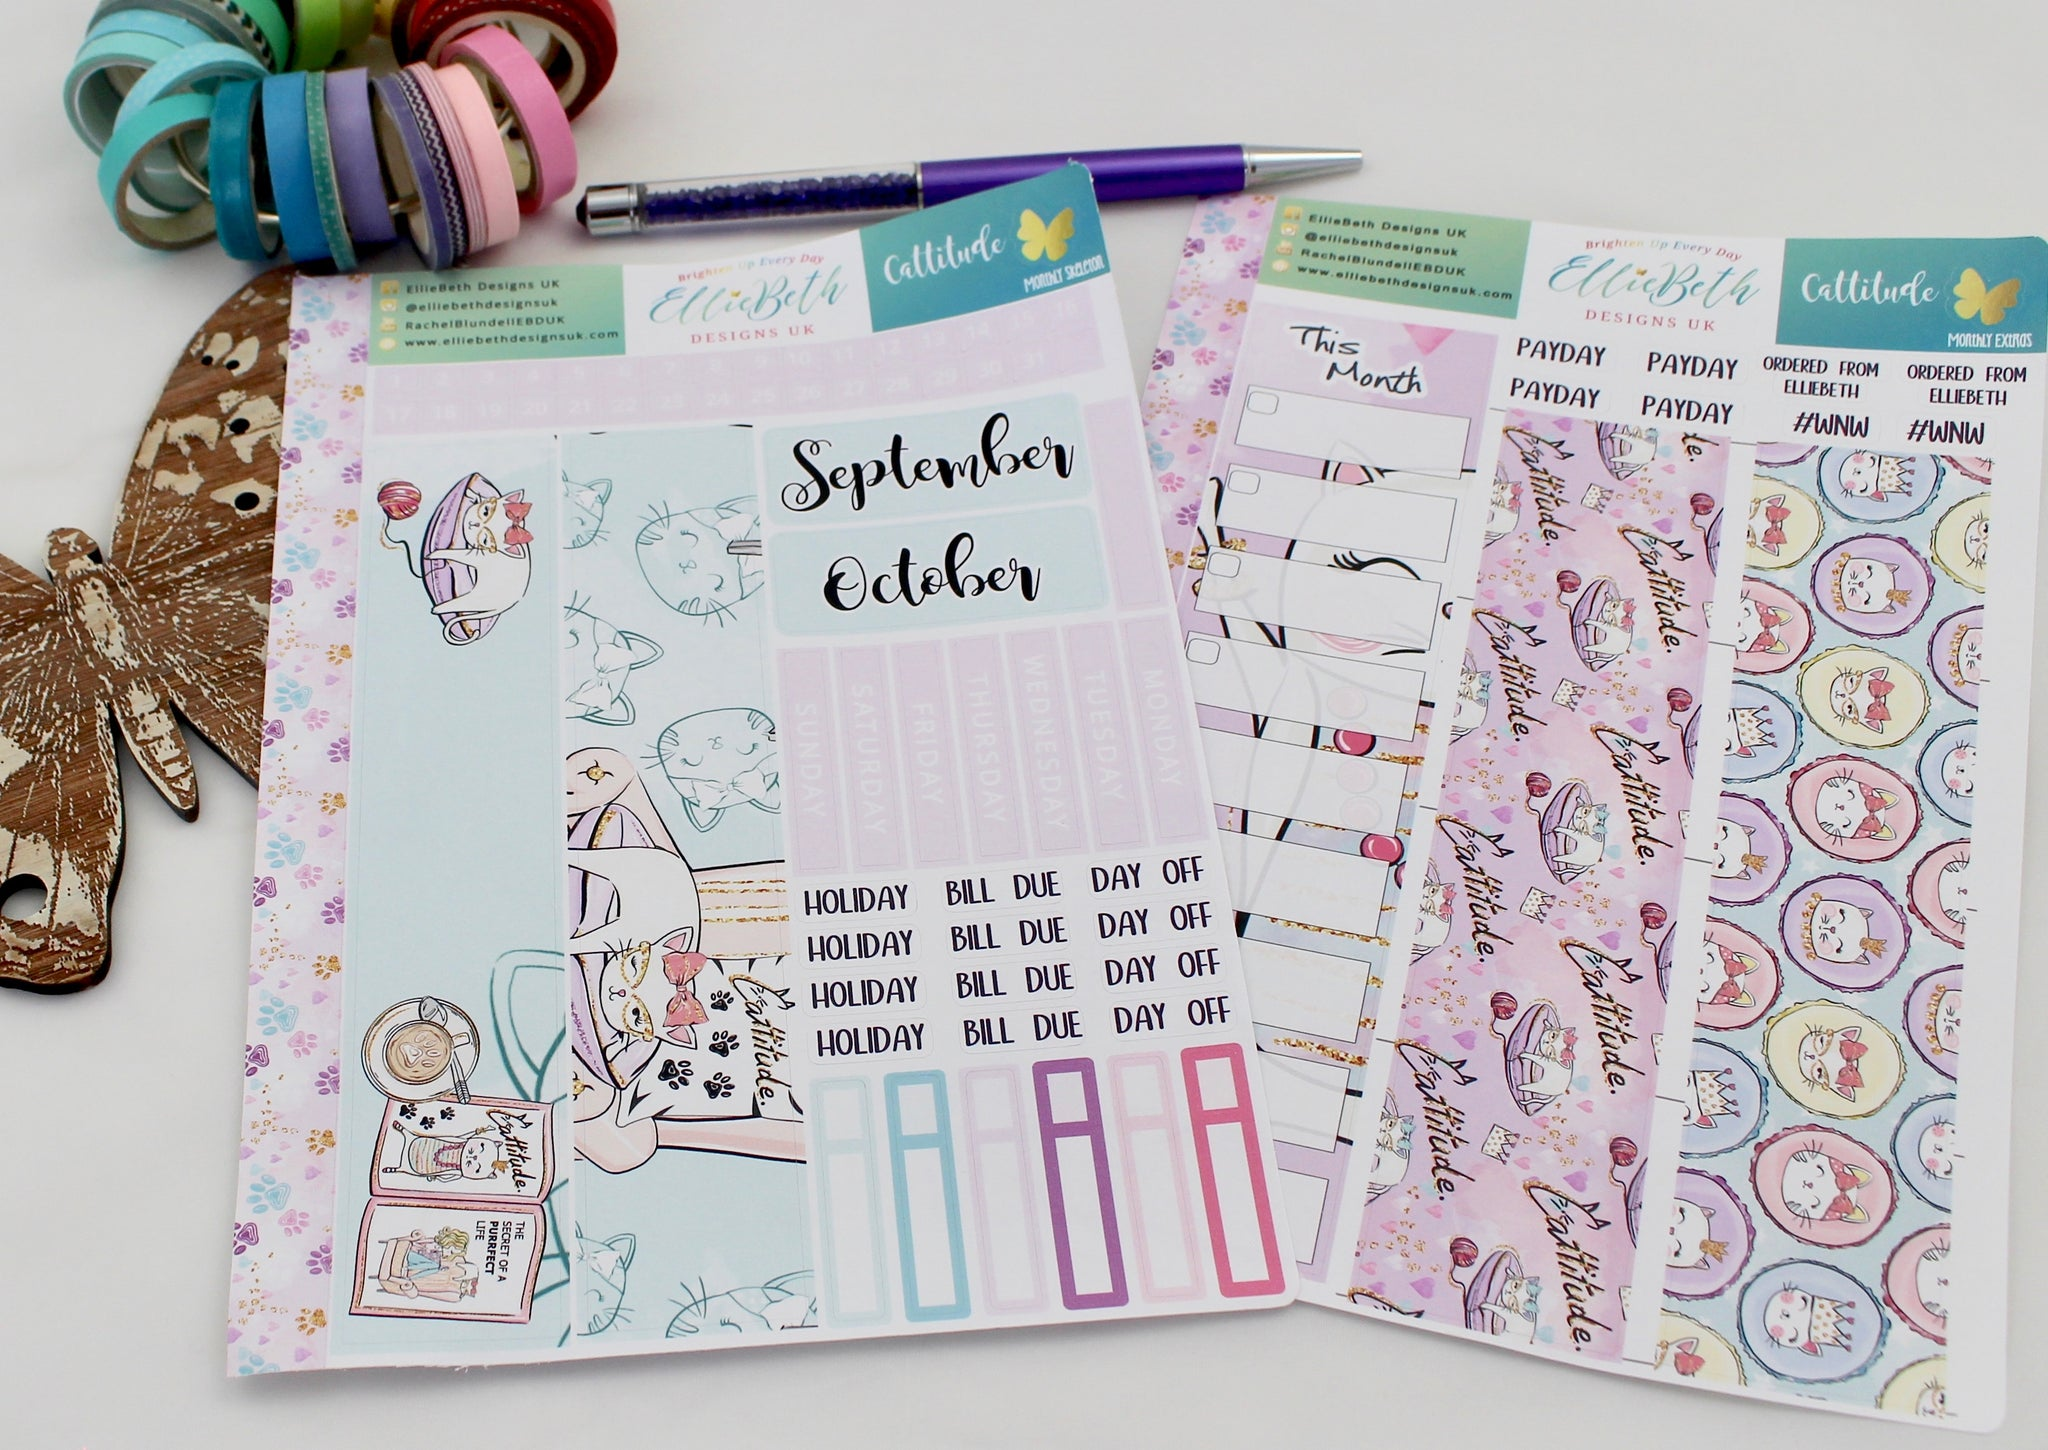 'Cattitude' - Monthly View Kit -  A5 binder ready planner stickers